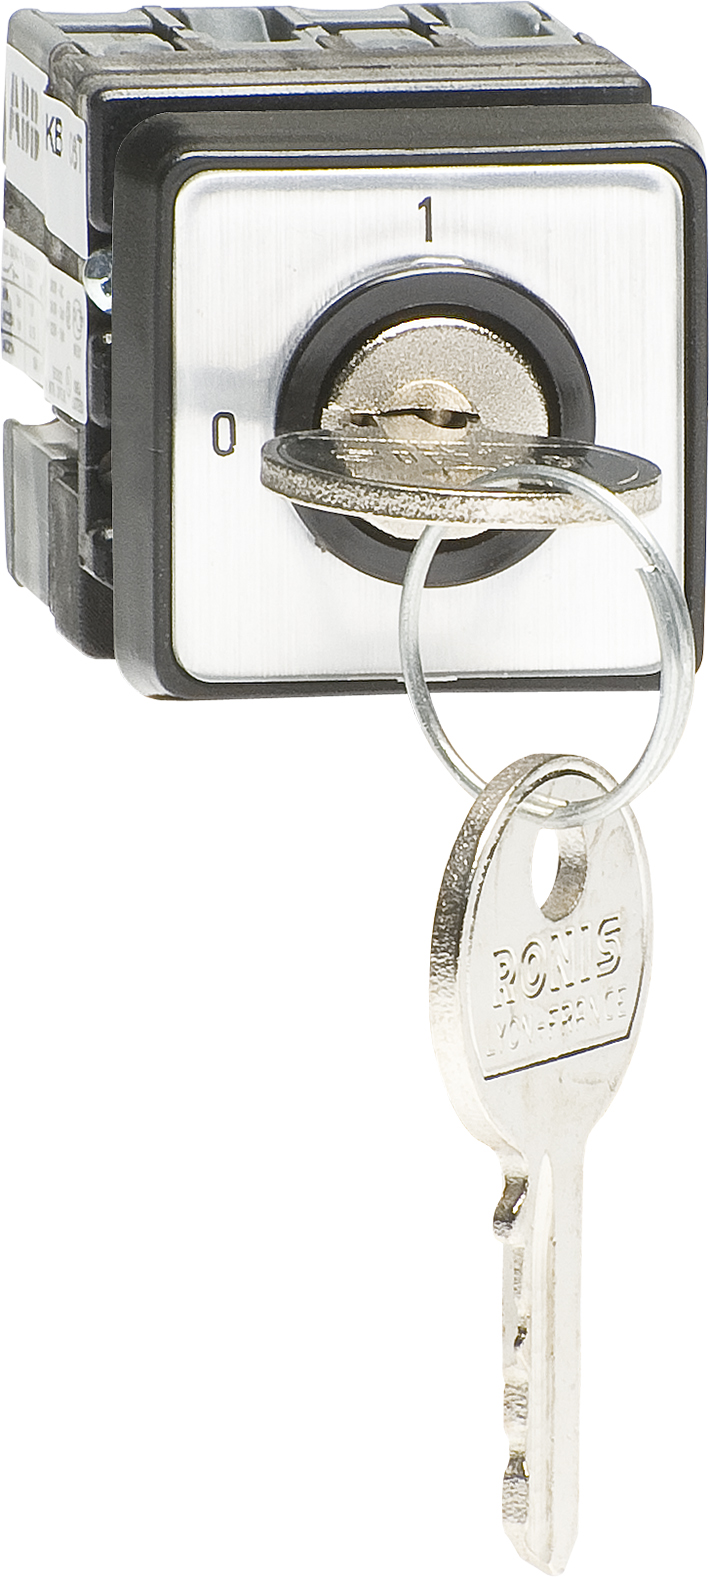 0-I Cam Switch, Miniature, Door Mounted, Key Operated, Withdrawable In Both Posit product photo